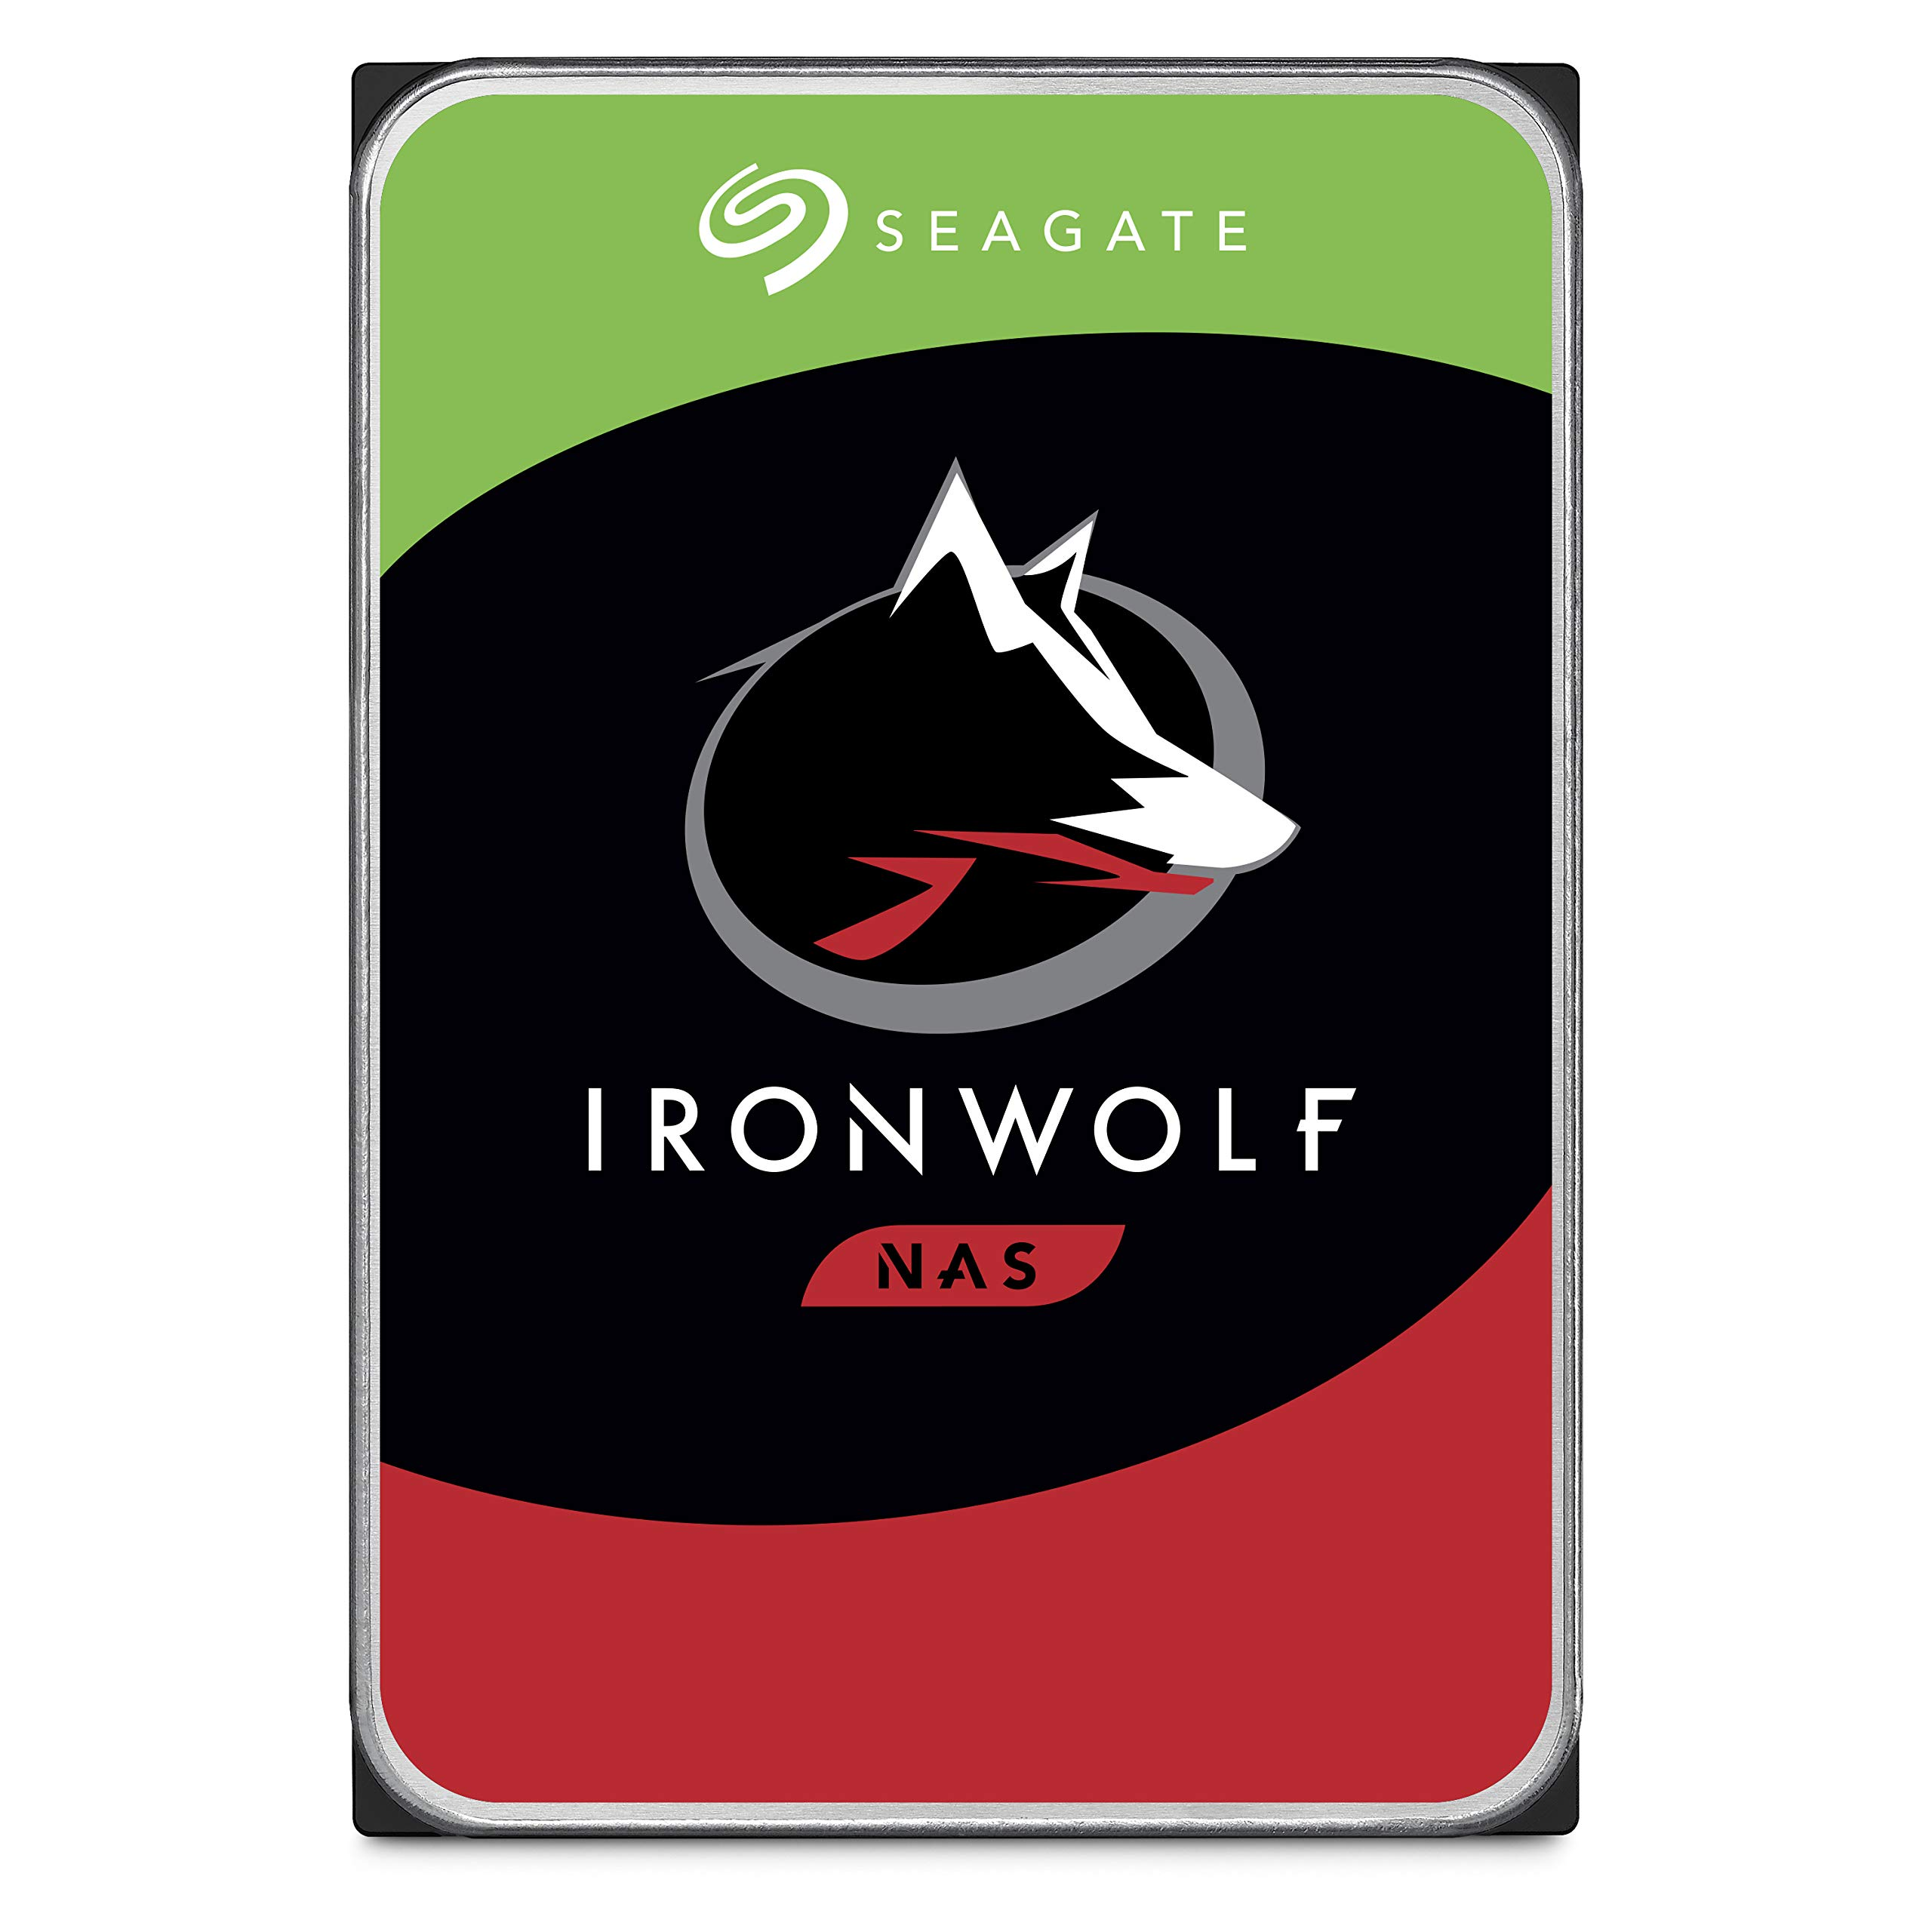 Seagate IronWolf 4TB NAS Internal Hard Drive HDD - 3.5 Inch SATA 6Gb/s 7200 RPM 64MB Cache for RAID Network Attached Storage - Frustration Free Packaging (ST4000VN008)